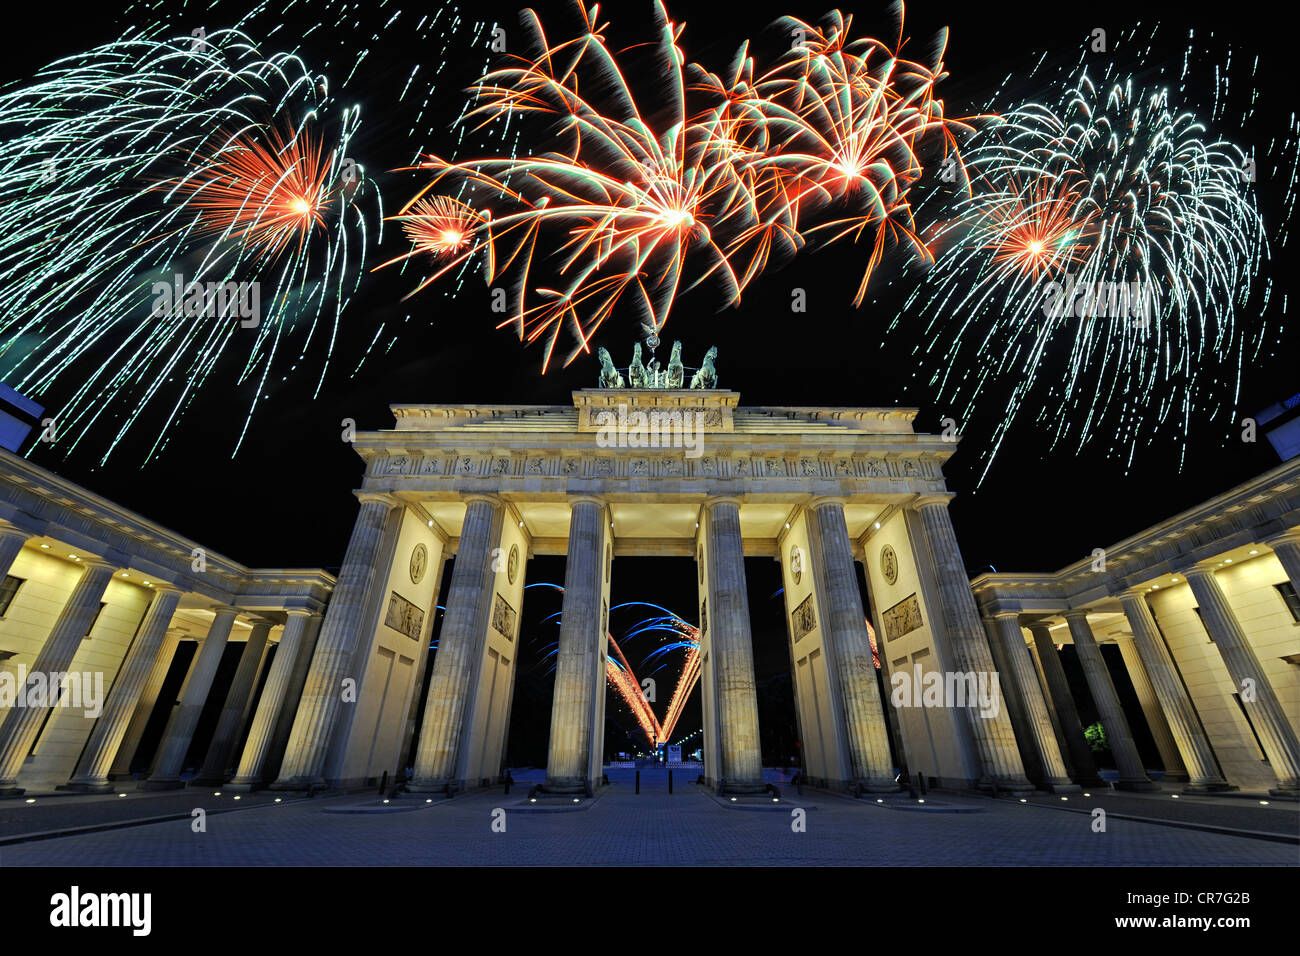 Brandenburg Gate with fireworks display, Berlin, Germany, Europe, composite Stock Photo